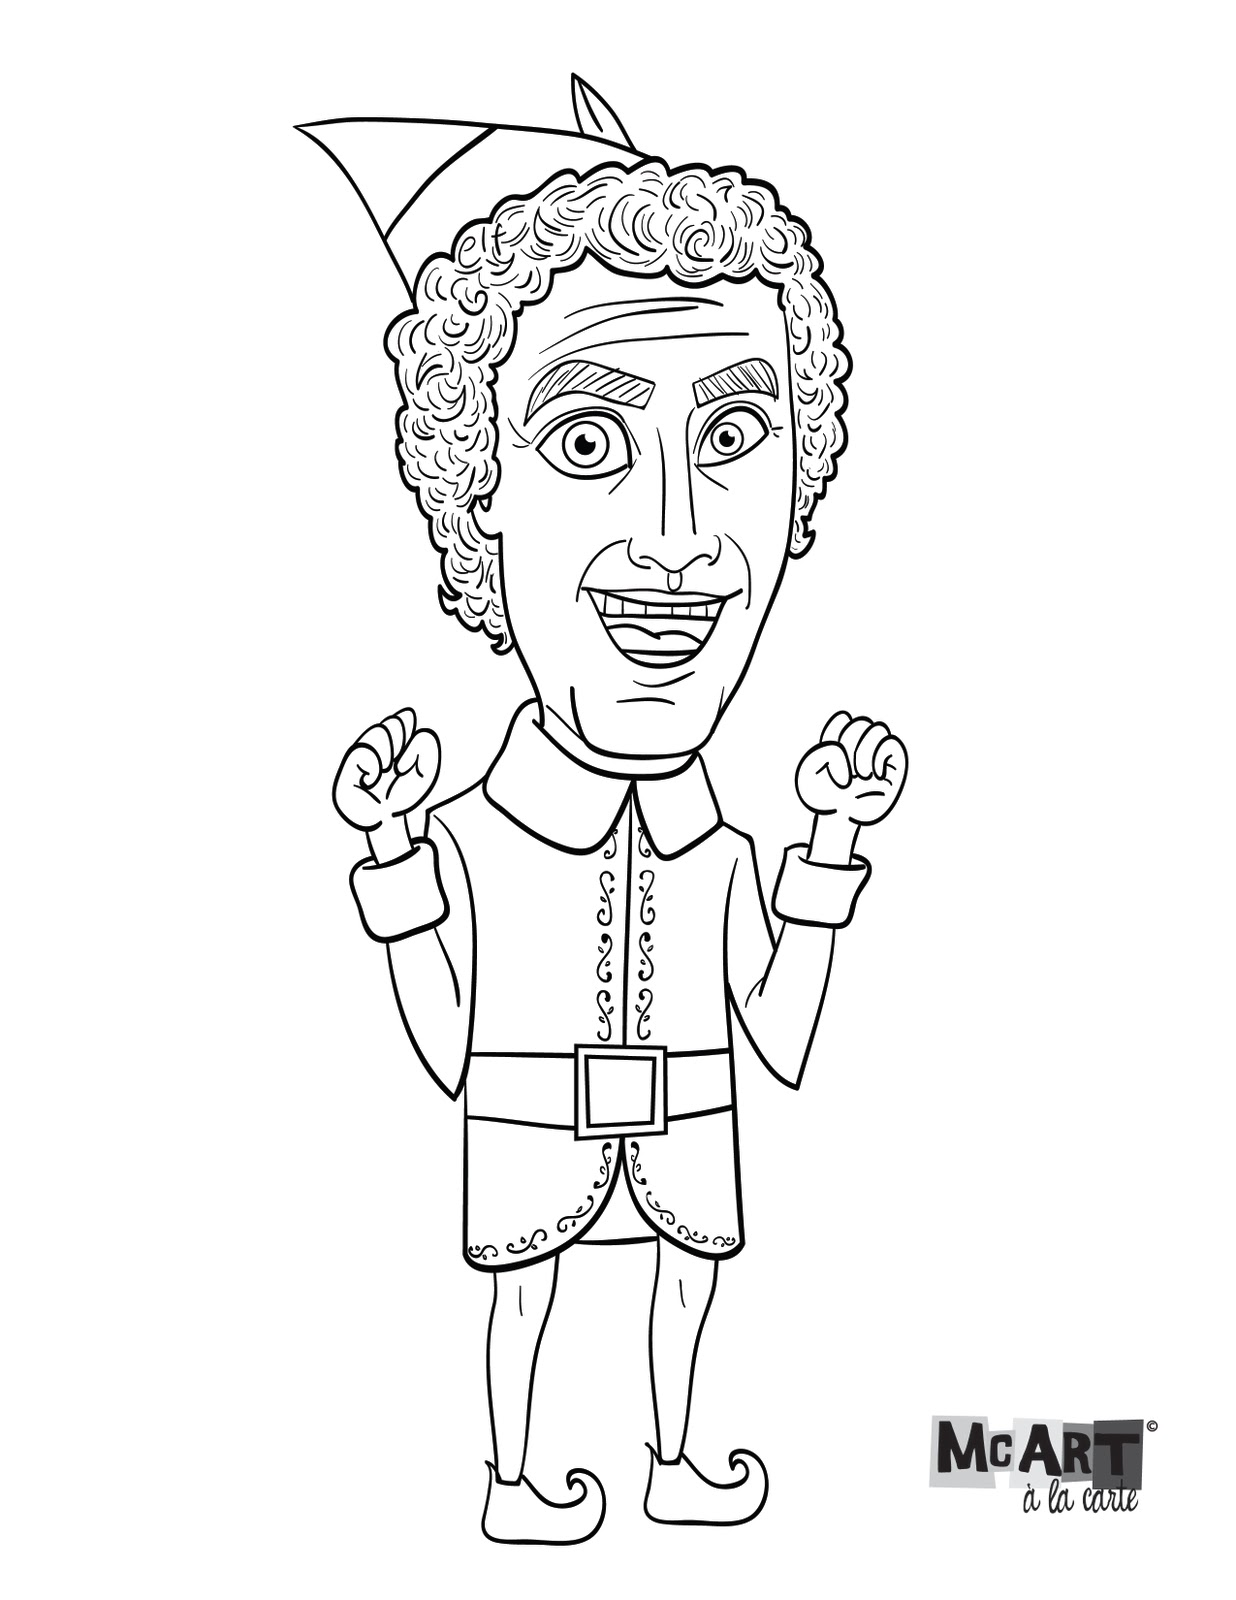 1236x1600 Mcart La Carte Buddy The Elf Coloring Page! Coloring Pages